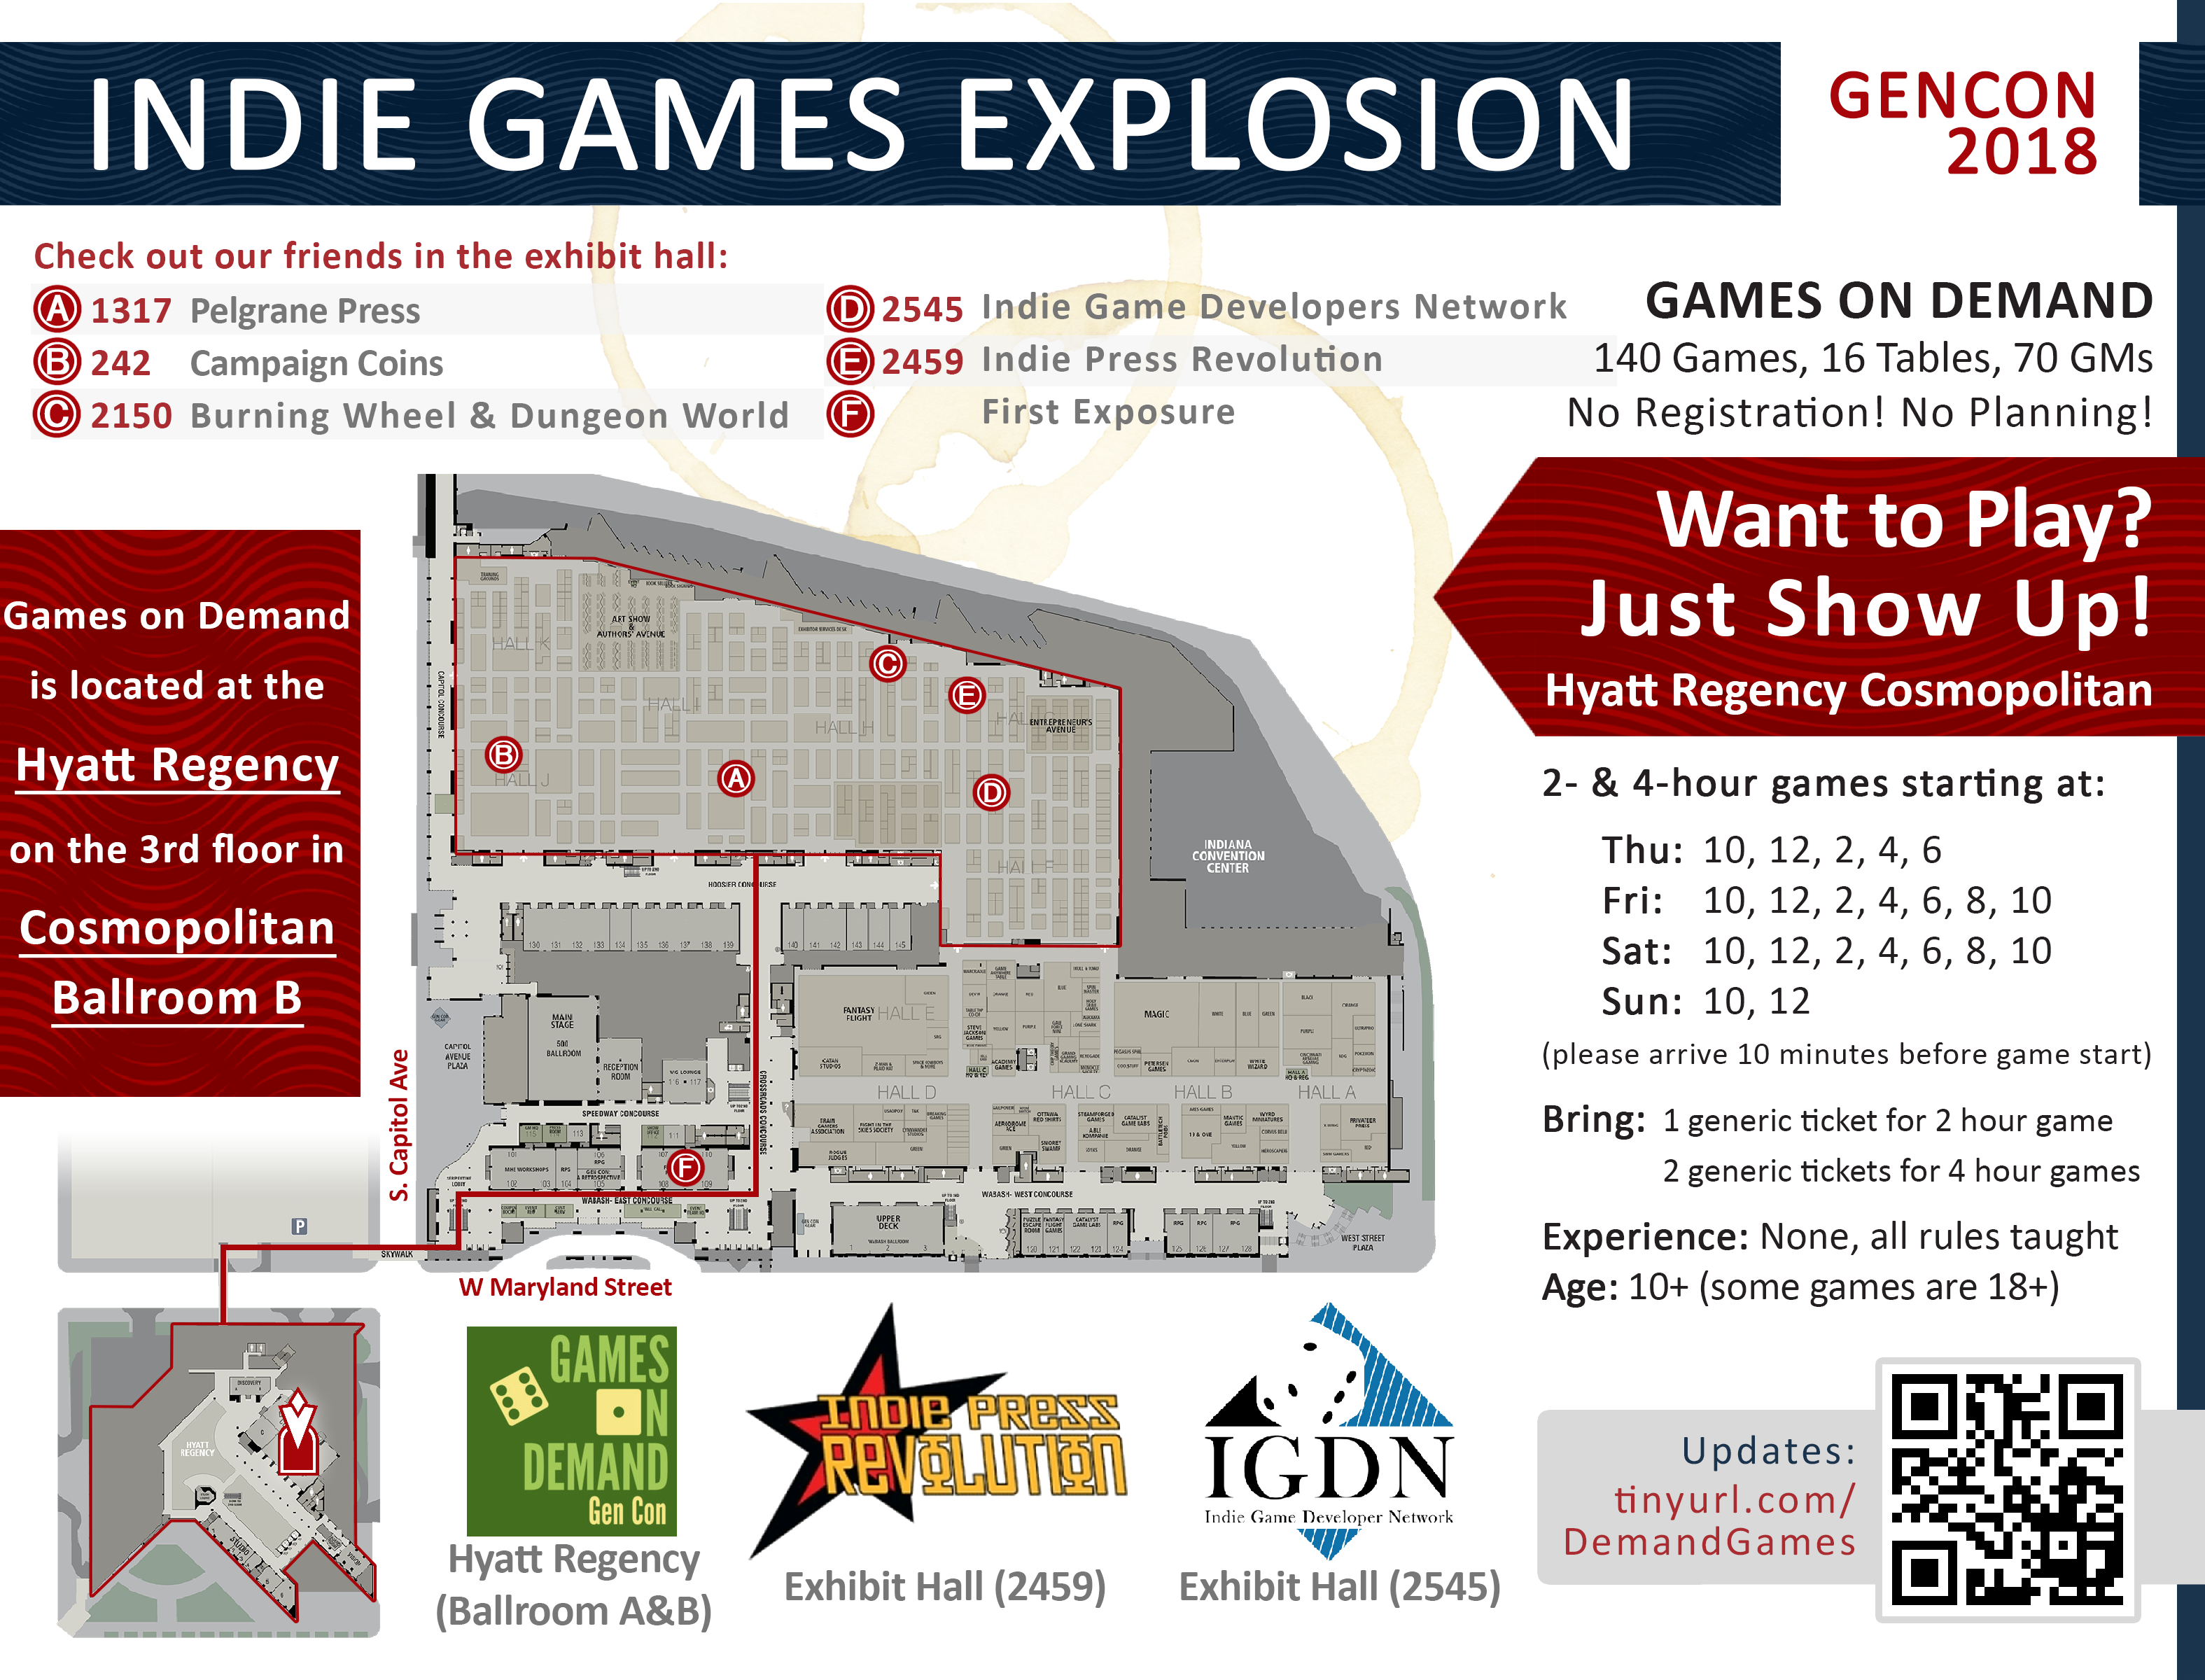 Map to Games on Demand at GenCon Gencon Map on anime expo map, pennsic map, history map, necc map, pax map, sxsw map, dragon con map, origins map, rhinebeck map,